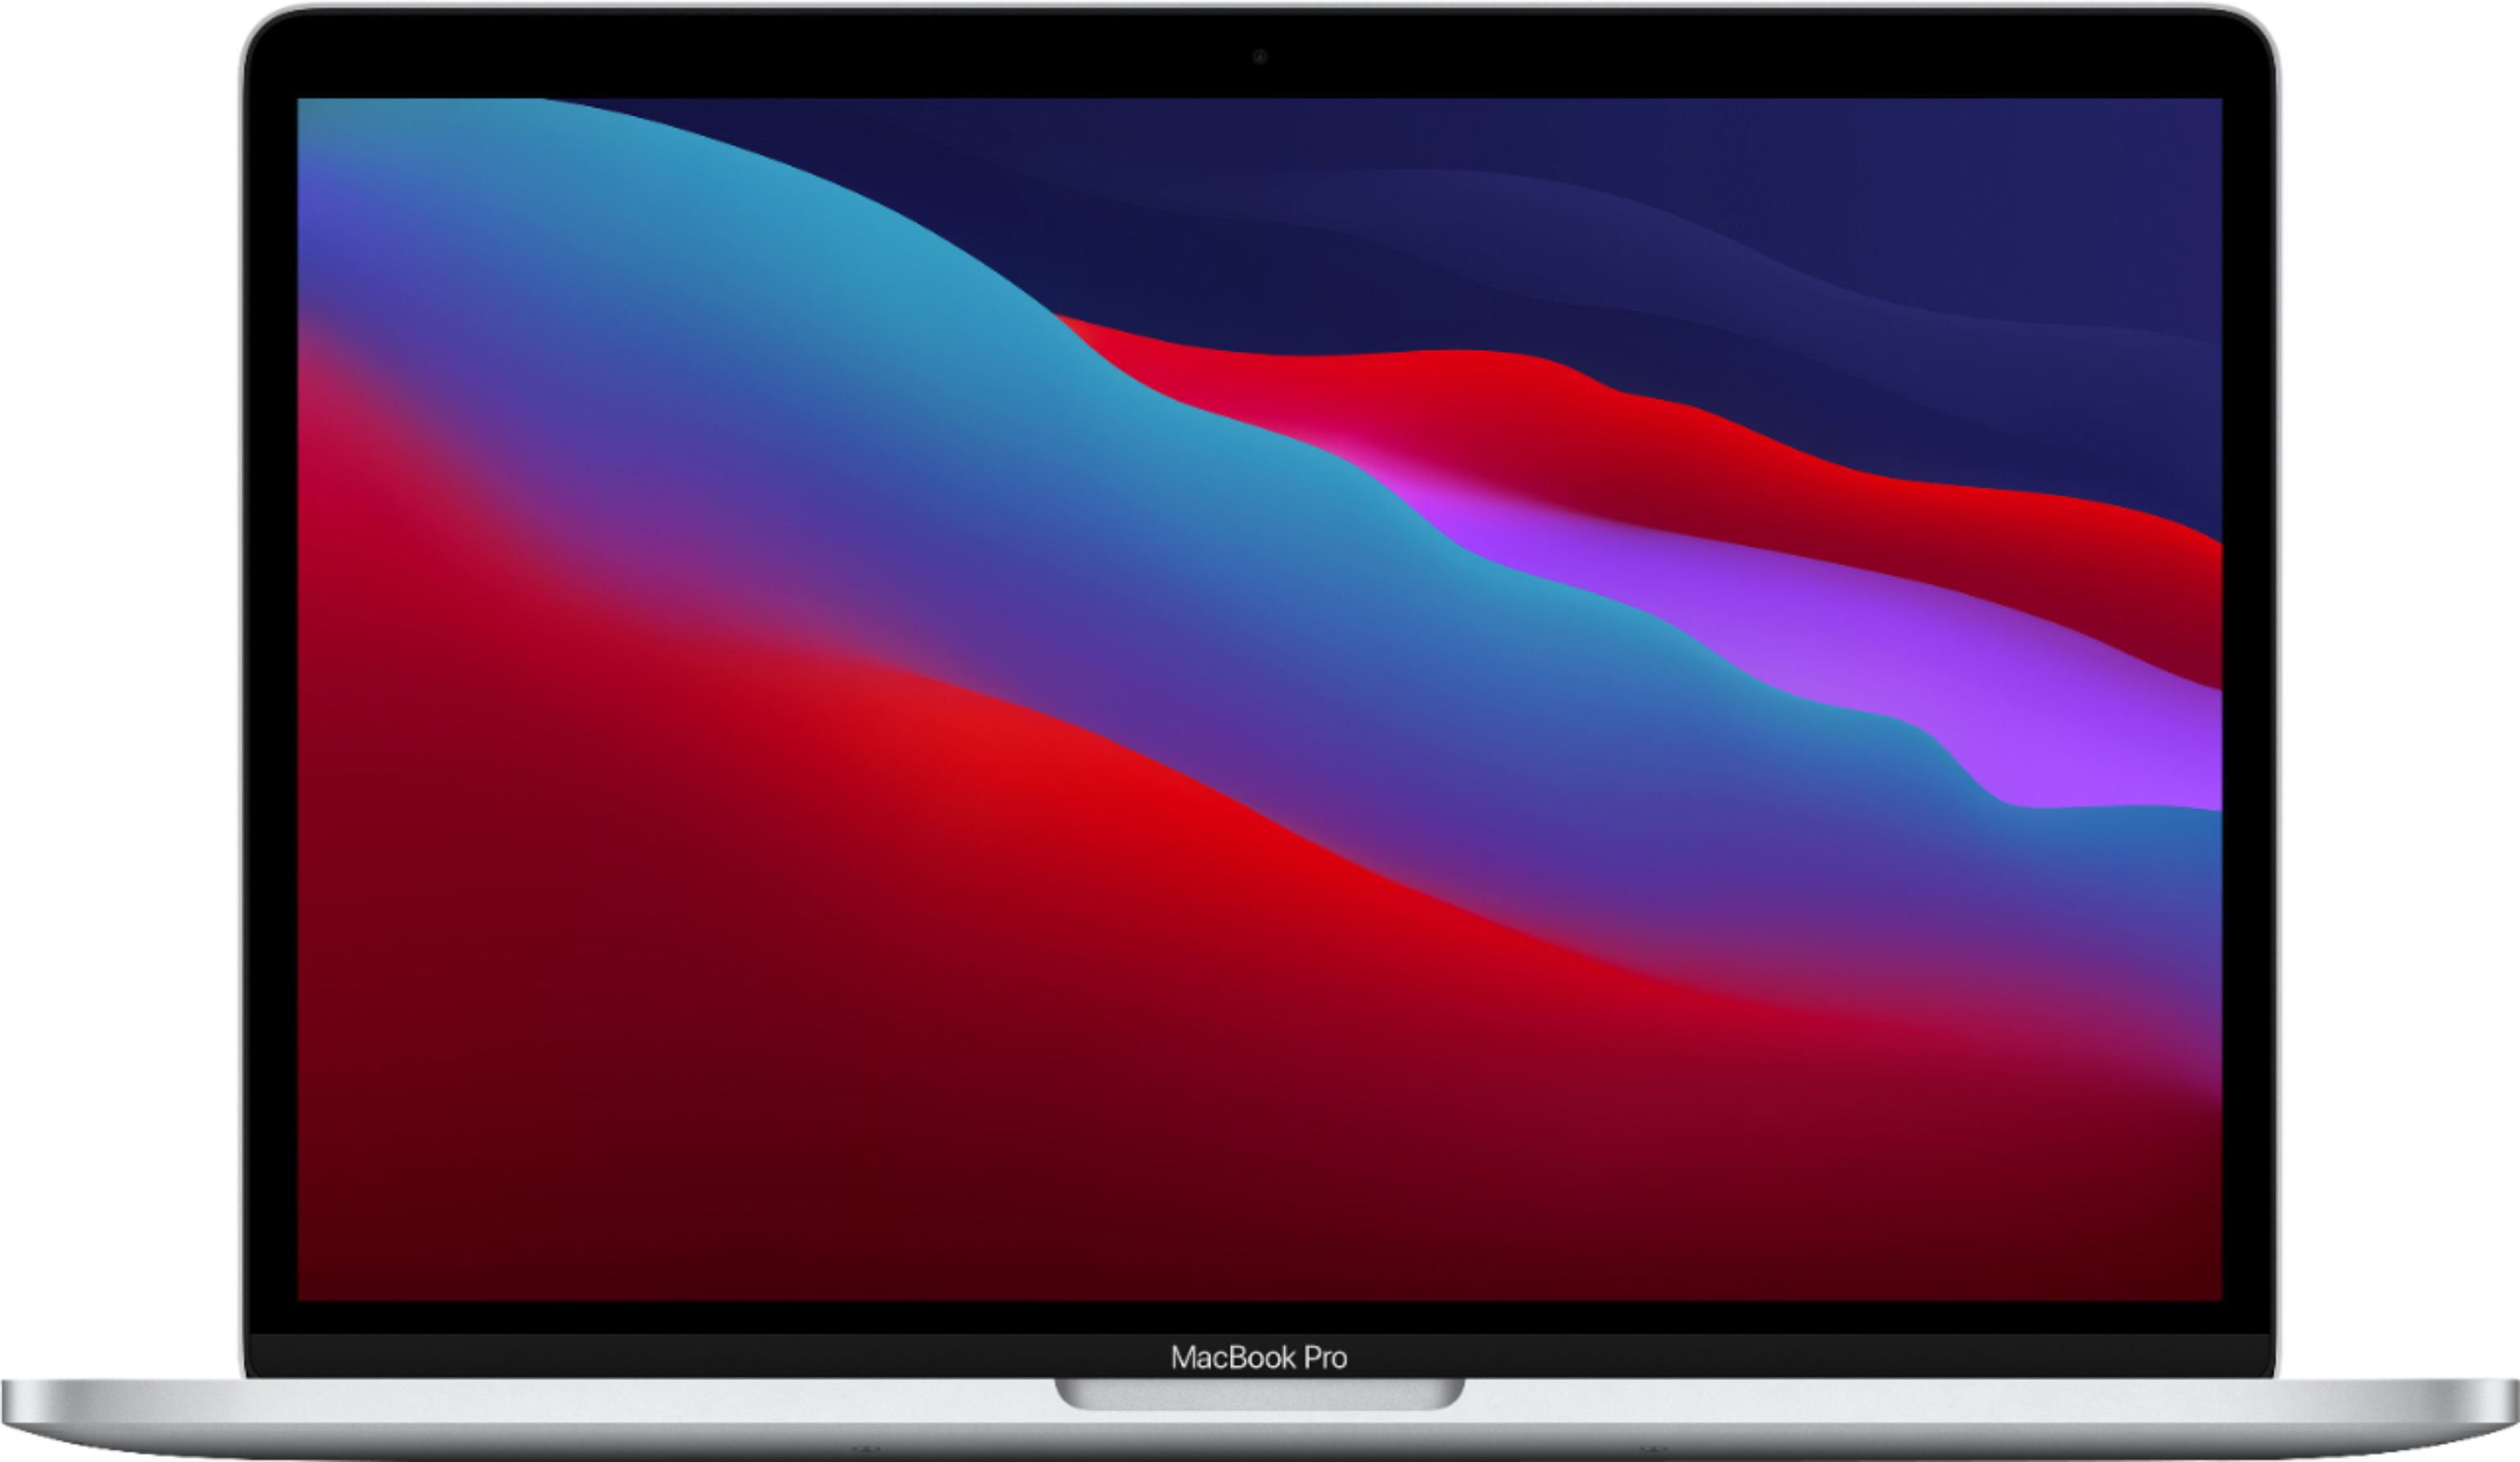 """Front Zoom. MacBook Pro 13.3"""" Laptop - Apple M1 chip - 8GB Memory - 256GB SSD (Latest Model) - Silver."""